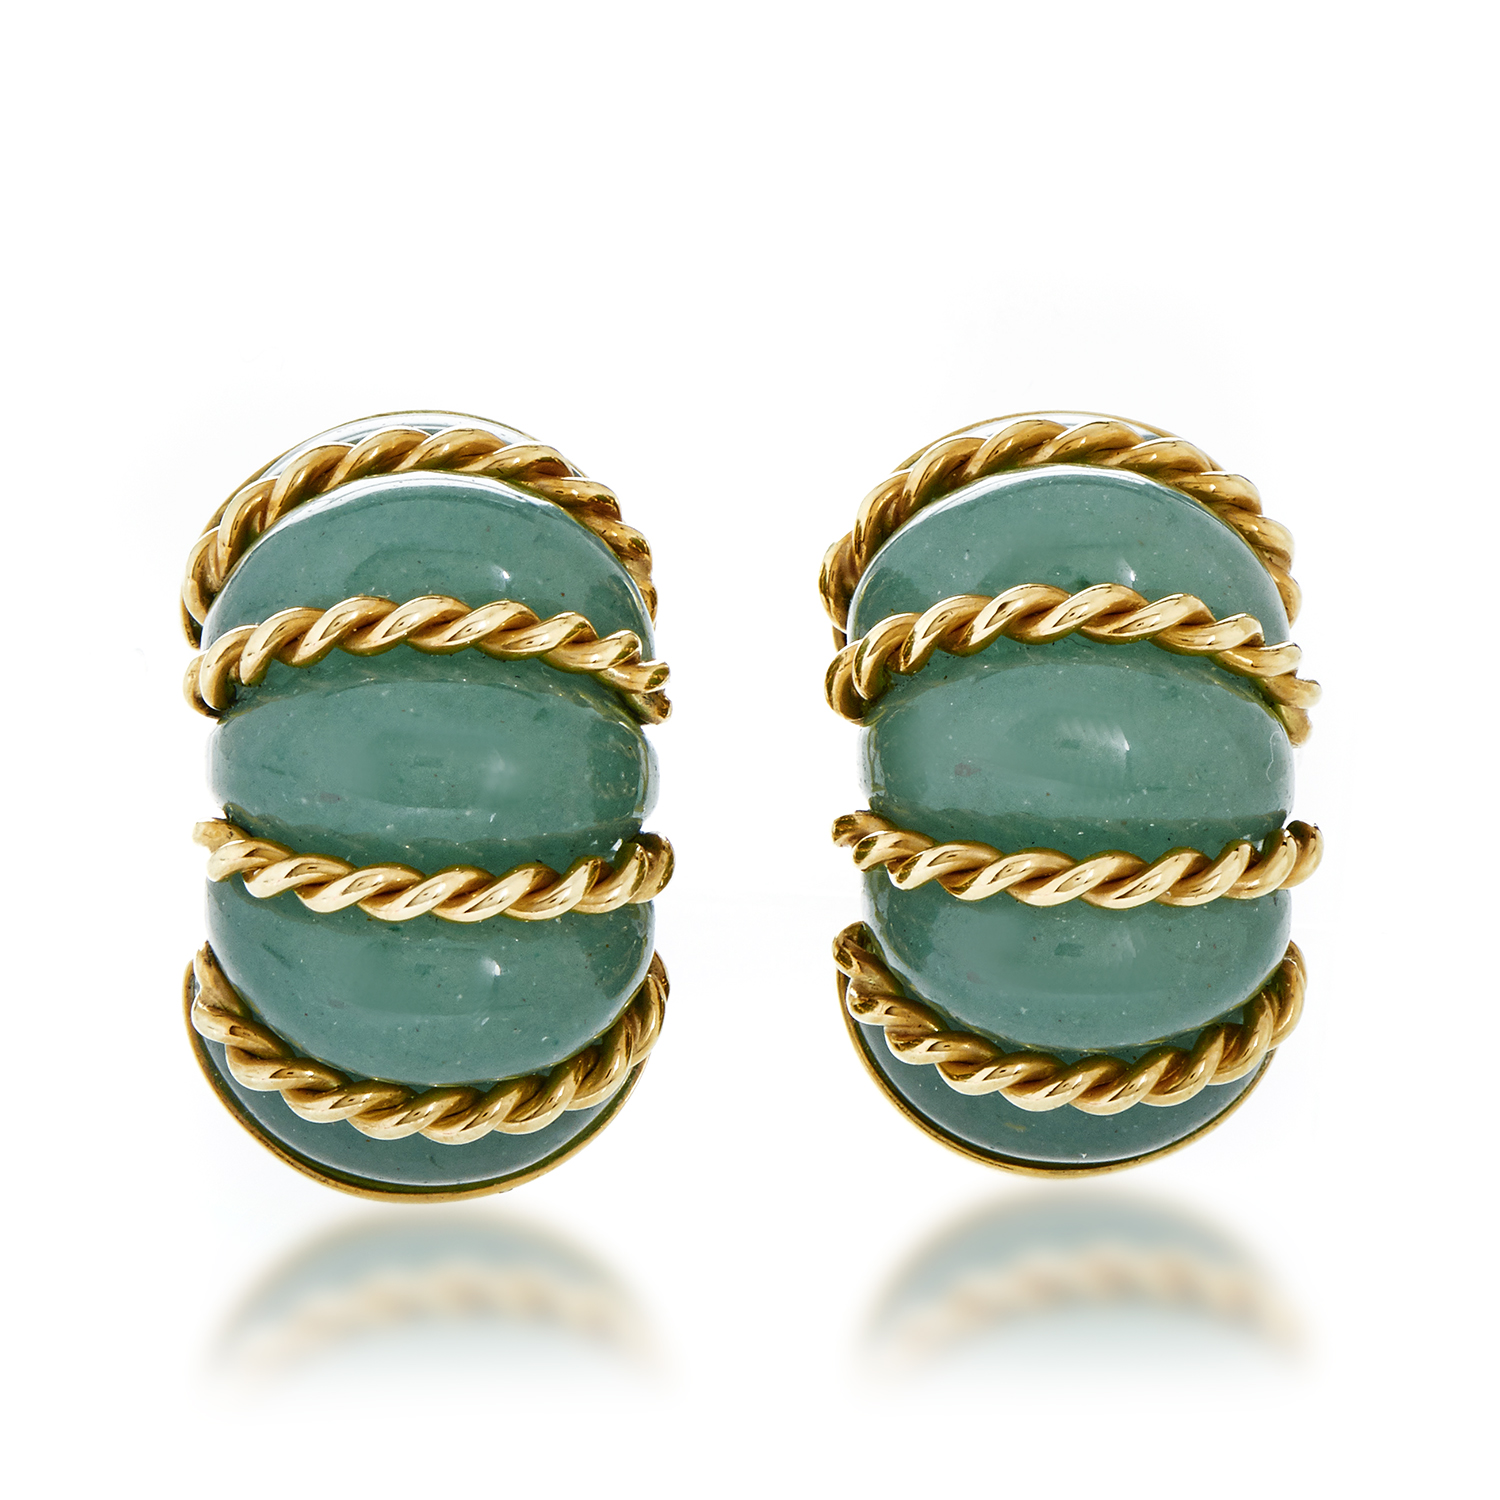 Seaman Schepps Women's 18K Yellow Gold Aventurine Quartz Huggie Earrings